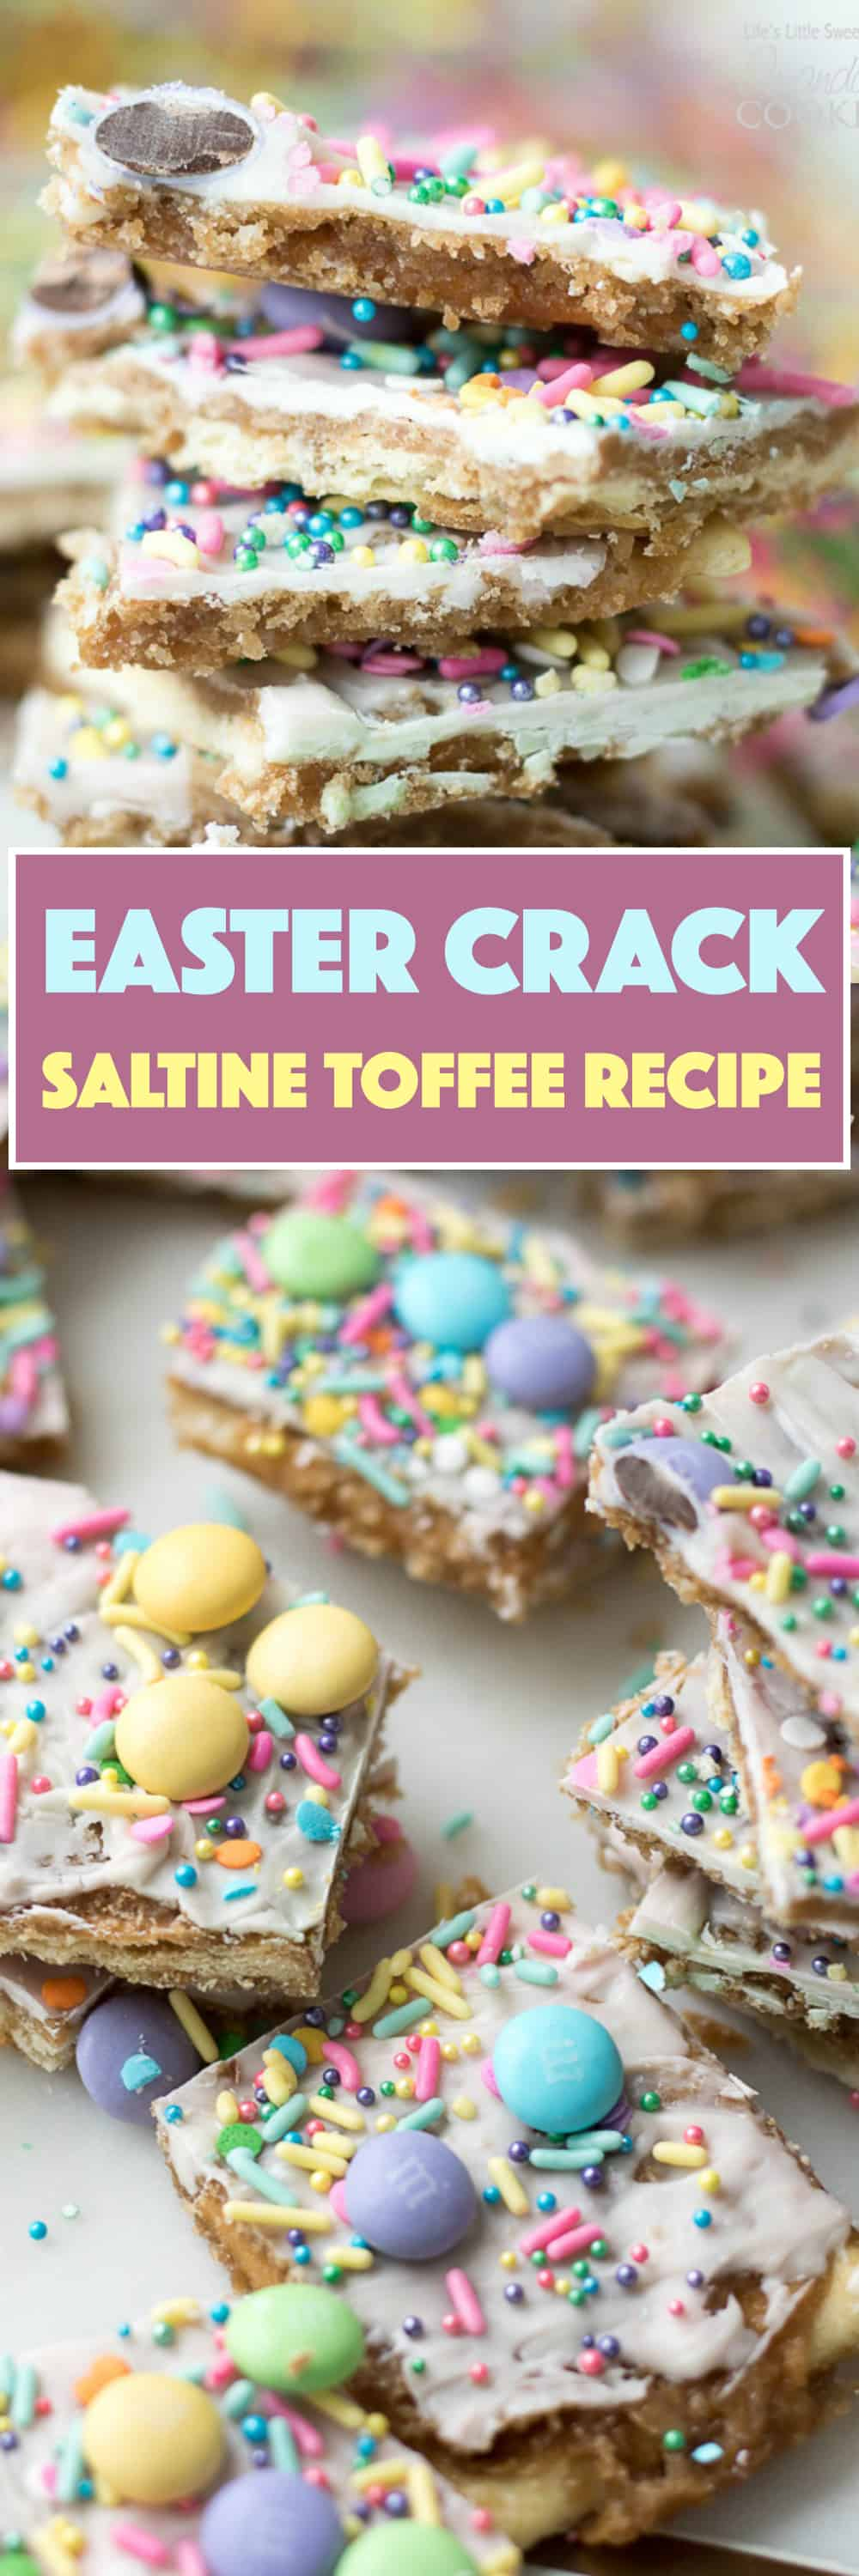 Try this Easter Crack recipe this Spring! This classic Saltine Toffee is an easy-to-make recipe using simple pantry ingredients like white chocolate, pastel sprinkles, and your favorite Easter candies.